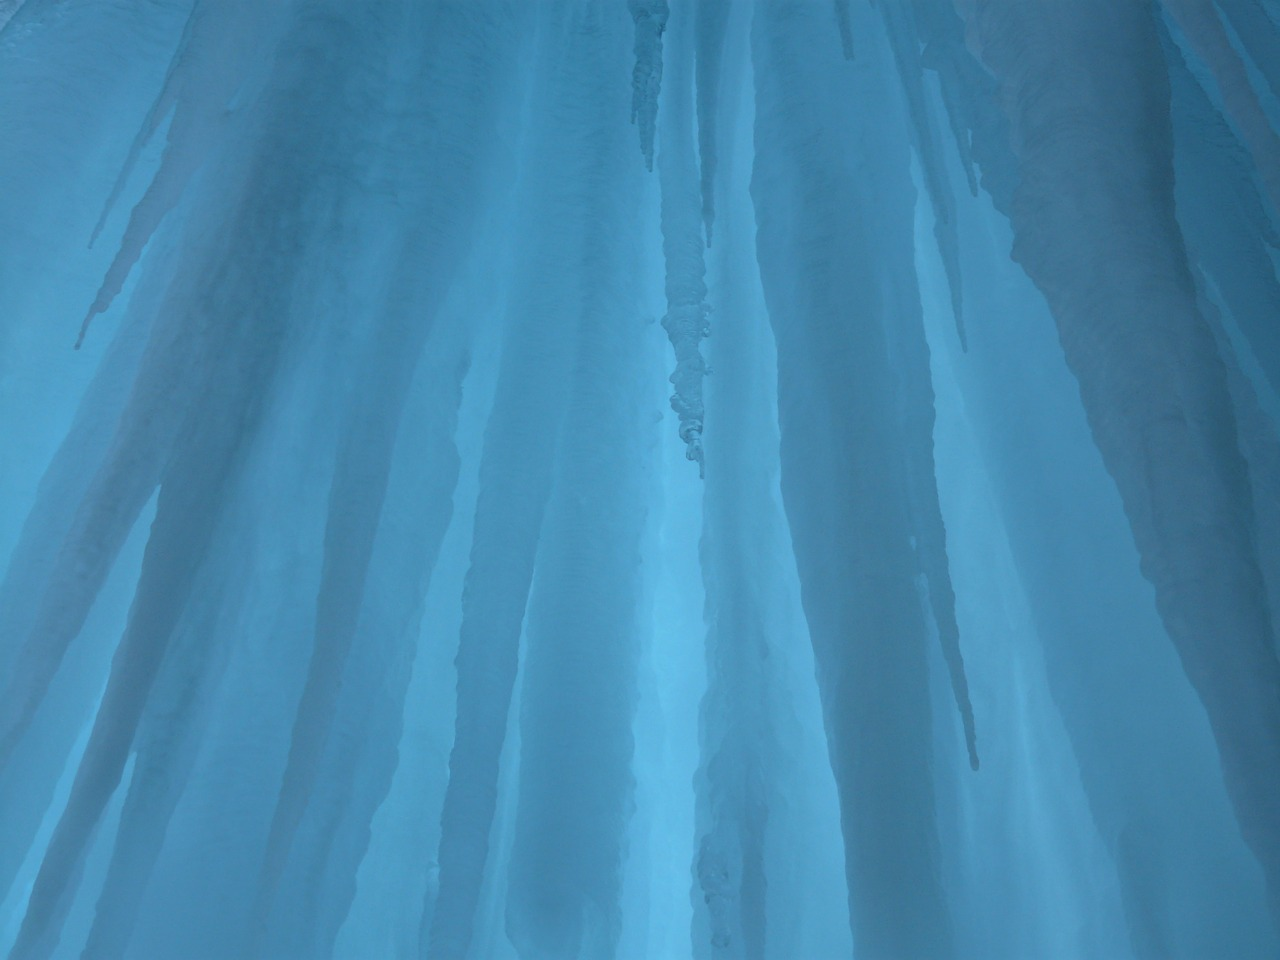 ice curtain blue shimmer free photo